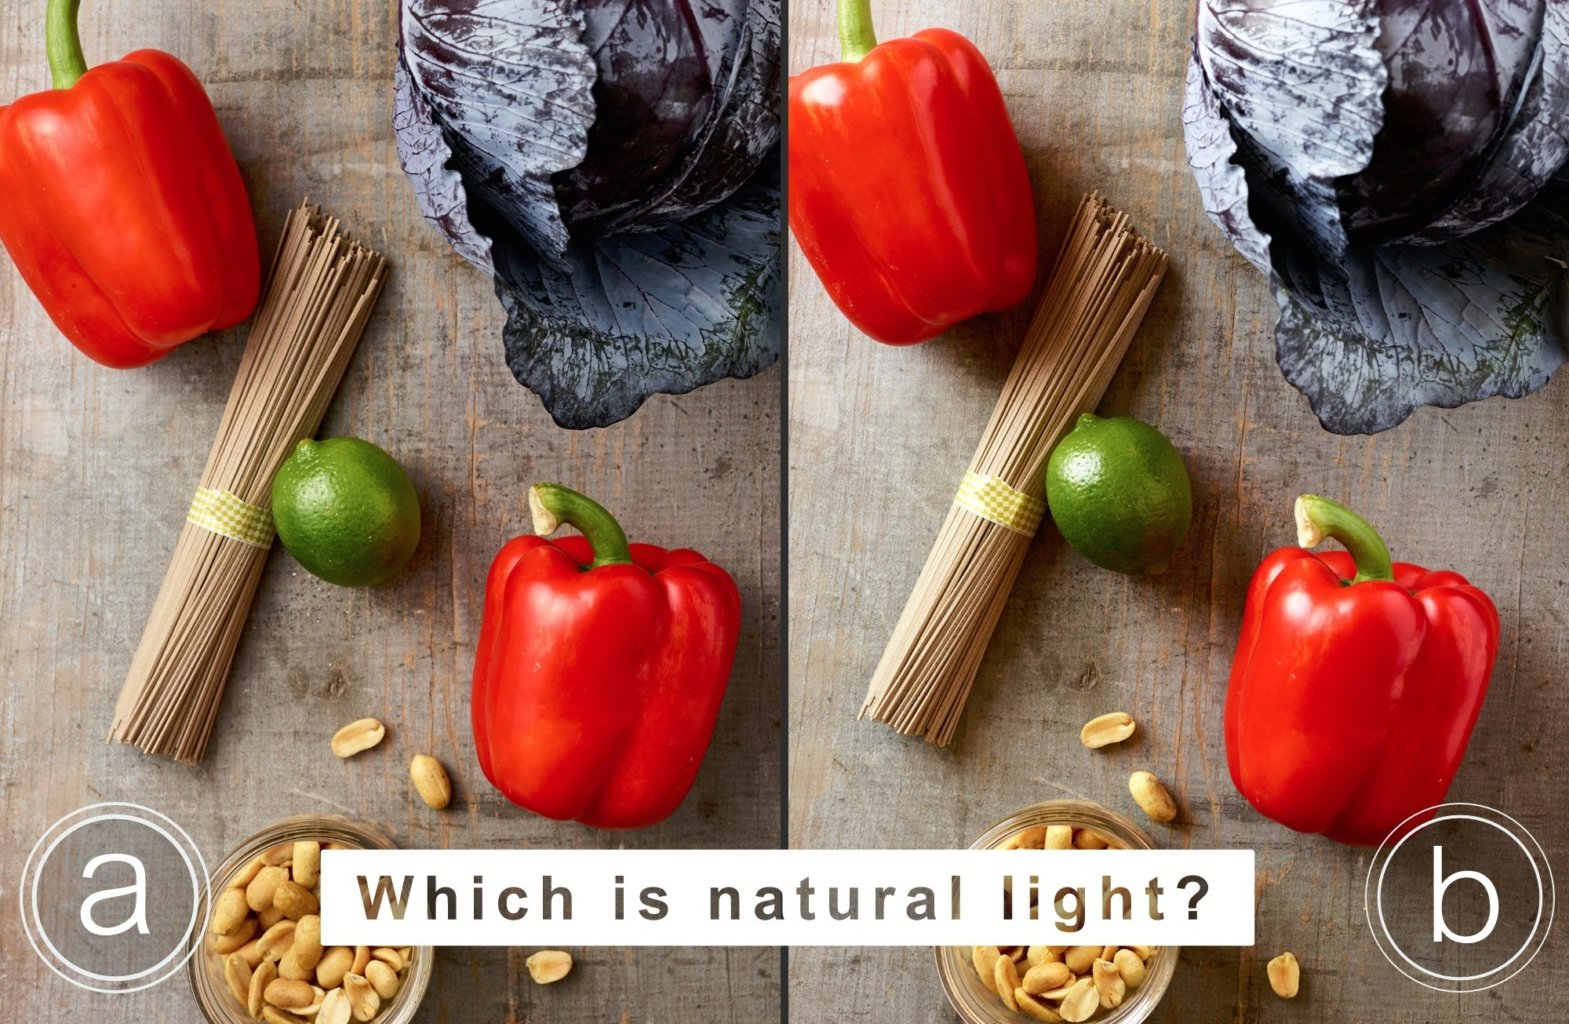 Which of these photos is natural light?